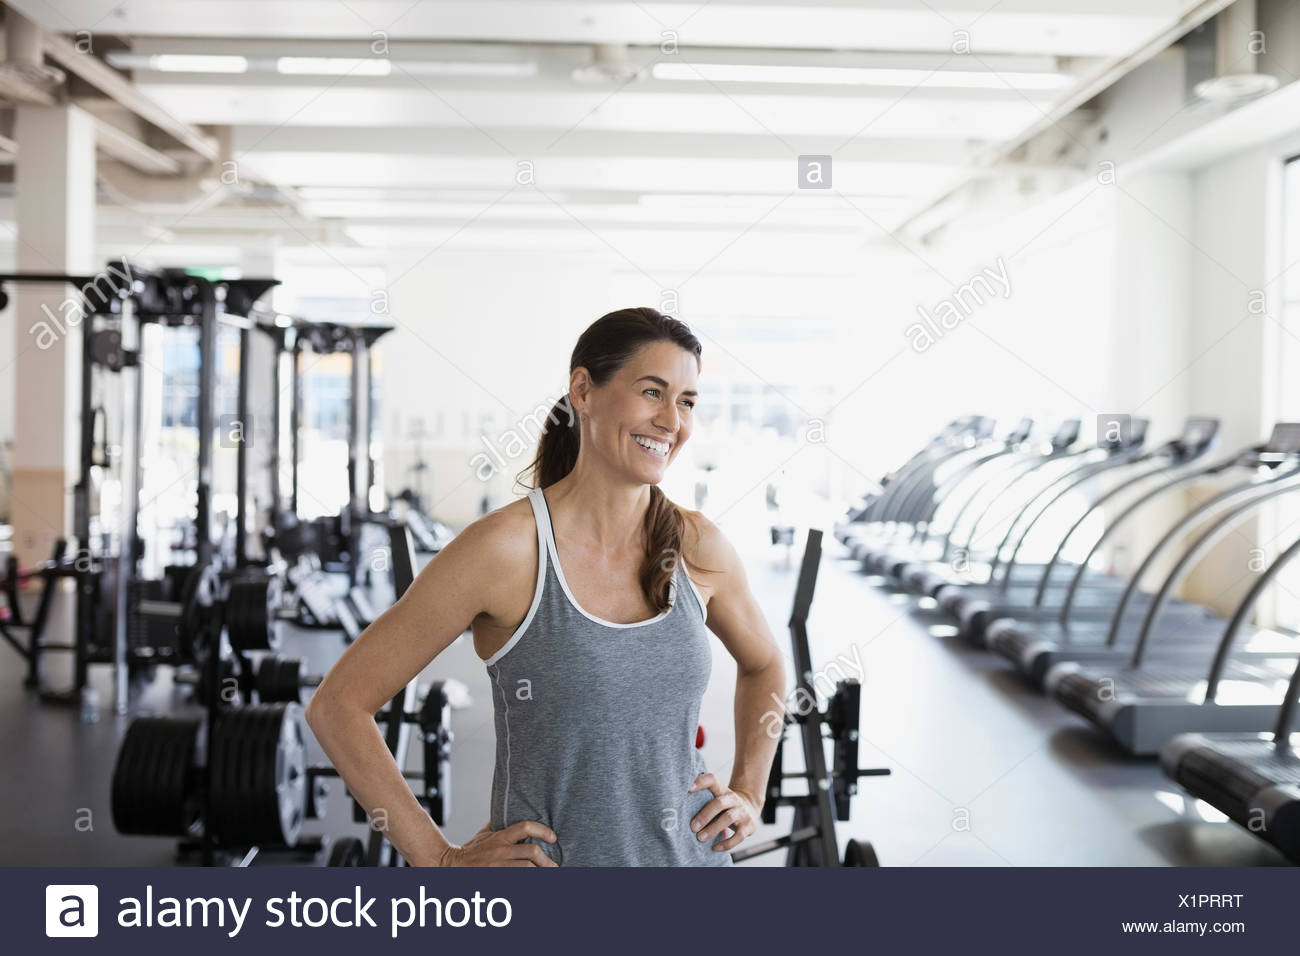 Laughing woman looking at gym Photo Stock